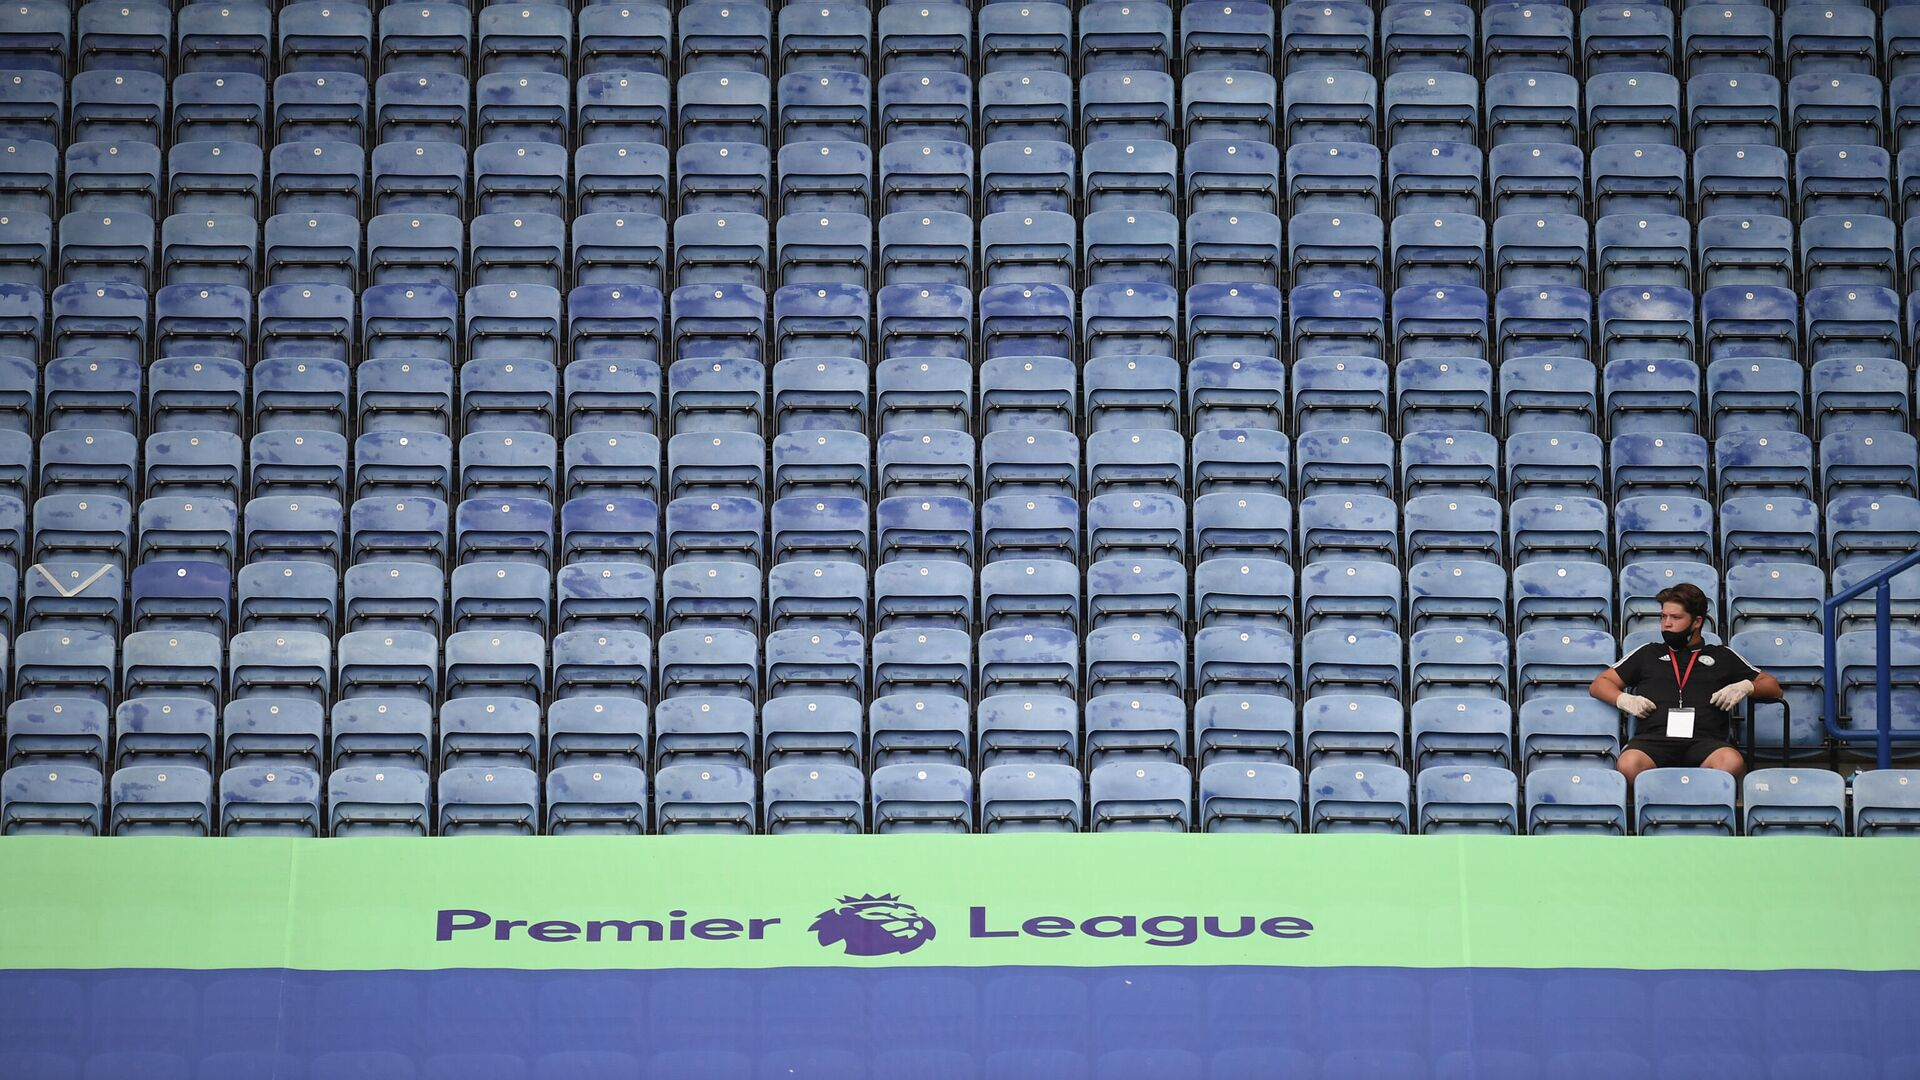 A member of staff sits in the empty stands during the English Premier League football match between Leicester City and Manchester United at King Power Stadium in Leicester, central England on July 26, 2020. (Photo by Oli SCARFF / POOL / AFP) / RESTRICTED TO EDITORIAL USE. No use with unauthorized audio, video, data, fixture lists, club/league logos or 'live' services. Online in-match use limited to 120 images. An additional 40 images may be used in extra time. No video emulation. Social media in-match use limited to 120 images. An additional 40 images may be used in extra time. No use in betting publications, games or single club/league/player publications. /  - РИА Новости, 1920, 16.09.2020